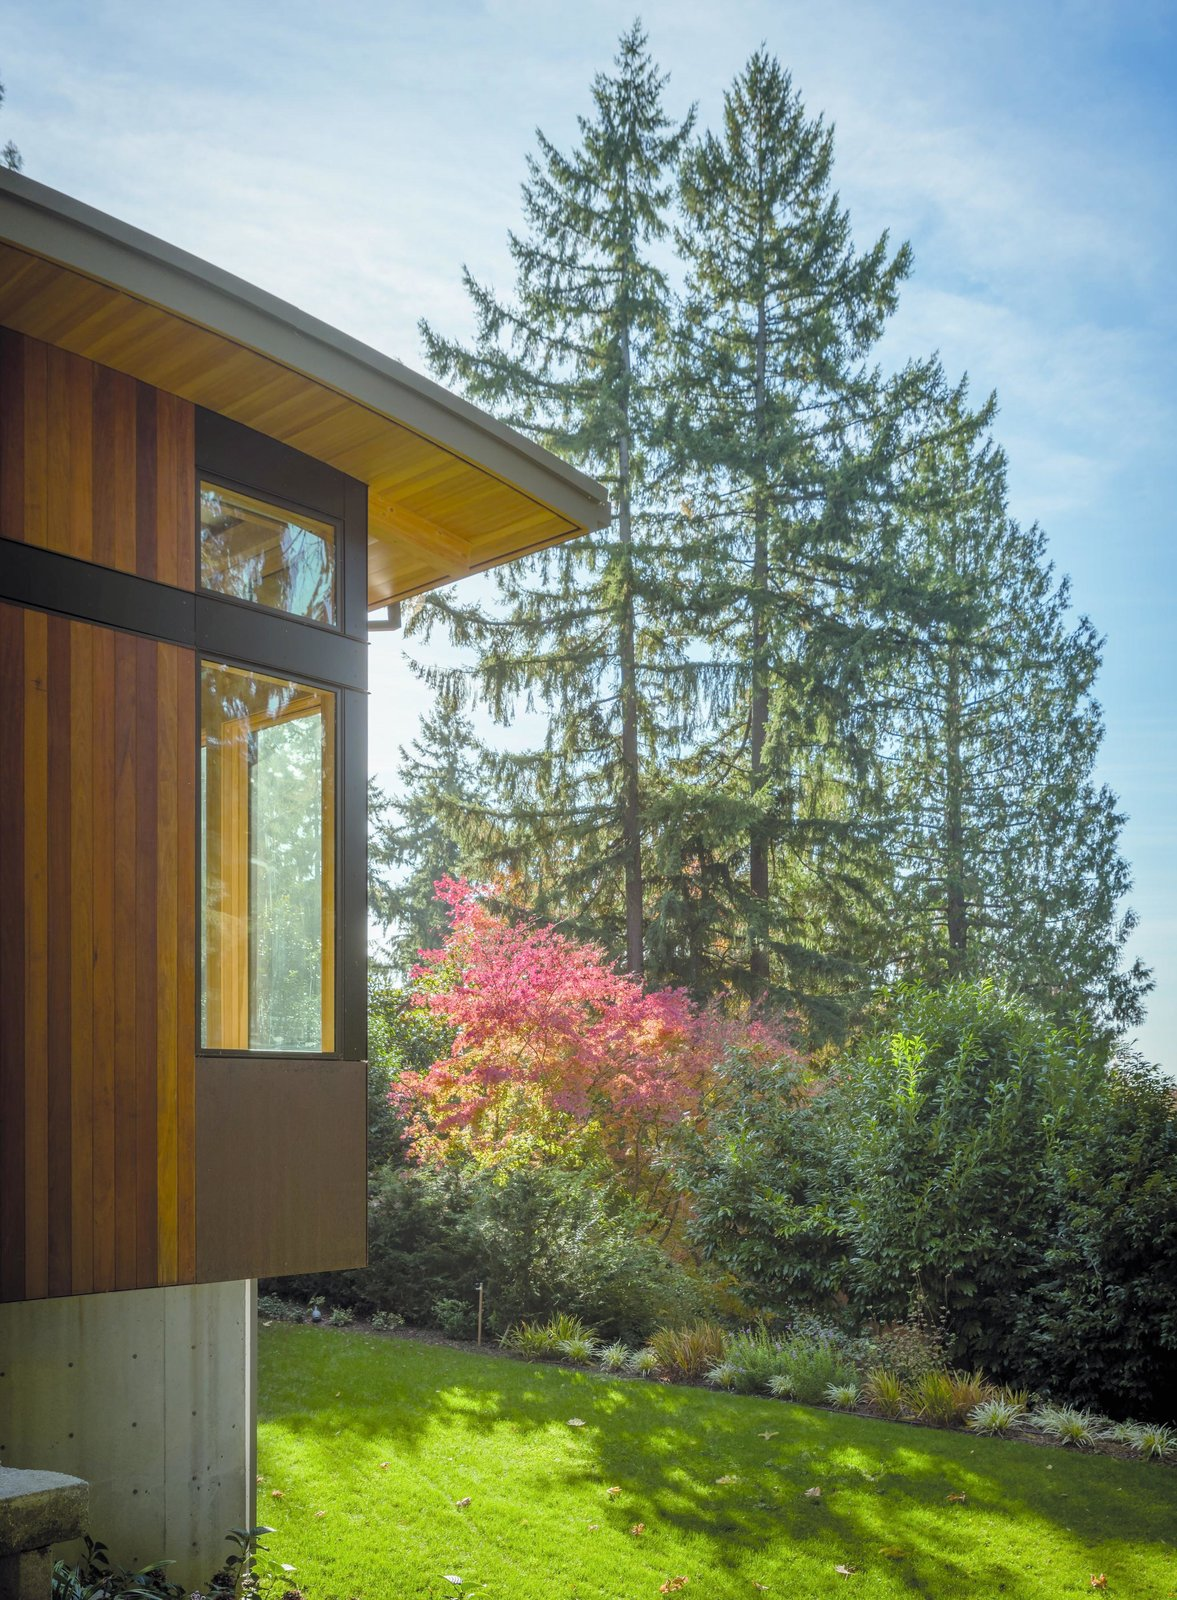 Exterior, House Building Type, Wood Siding Material, Curved RoofLine, and Concrete Siding Material Wave House   Olson Kundig  Wave House by Olson Kundig